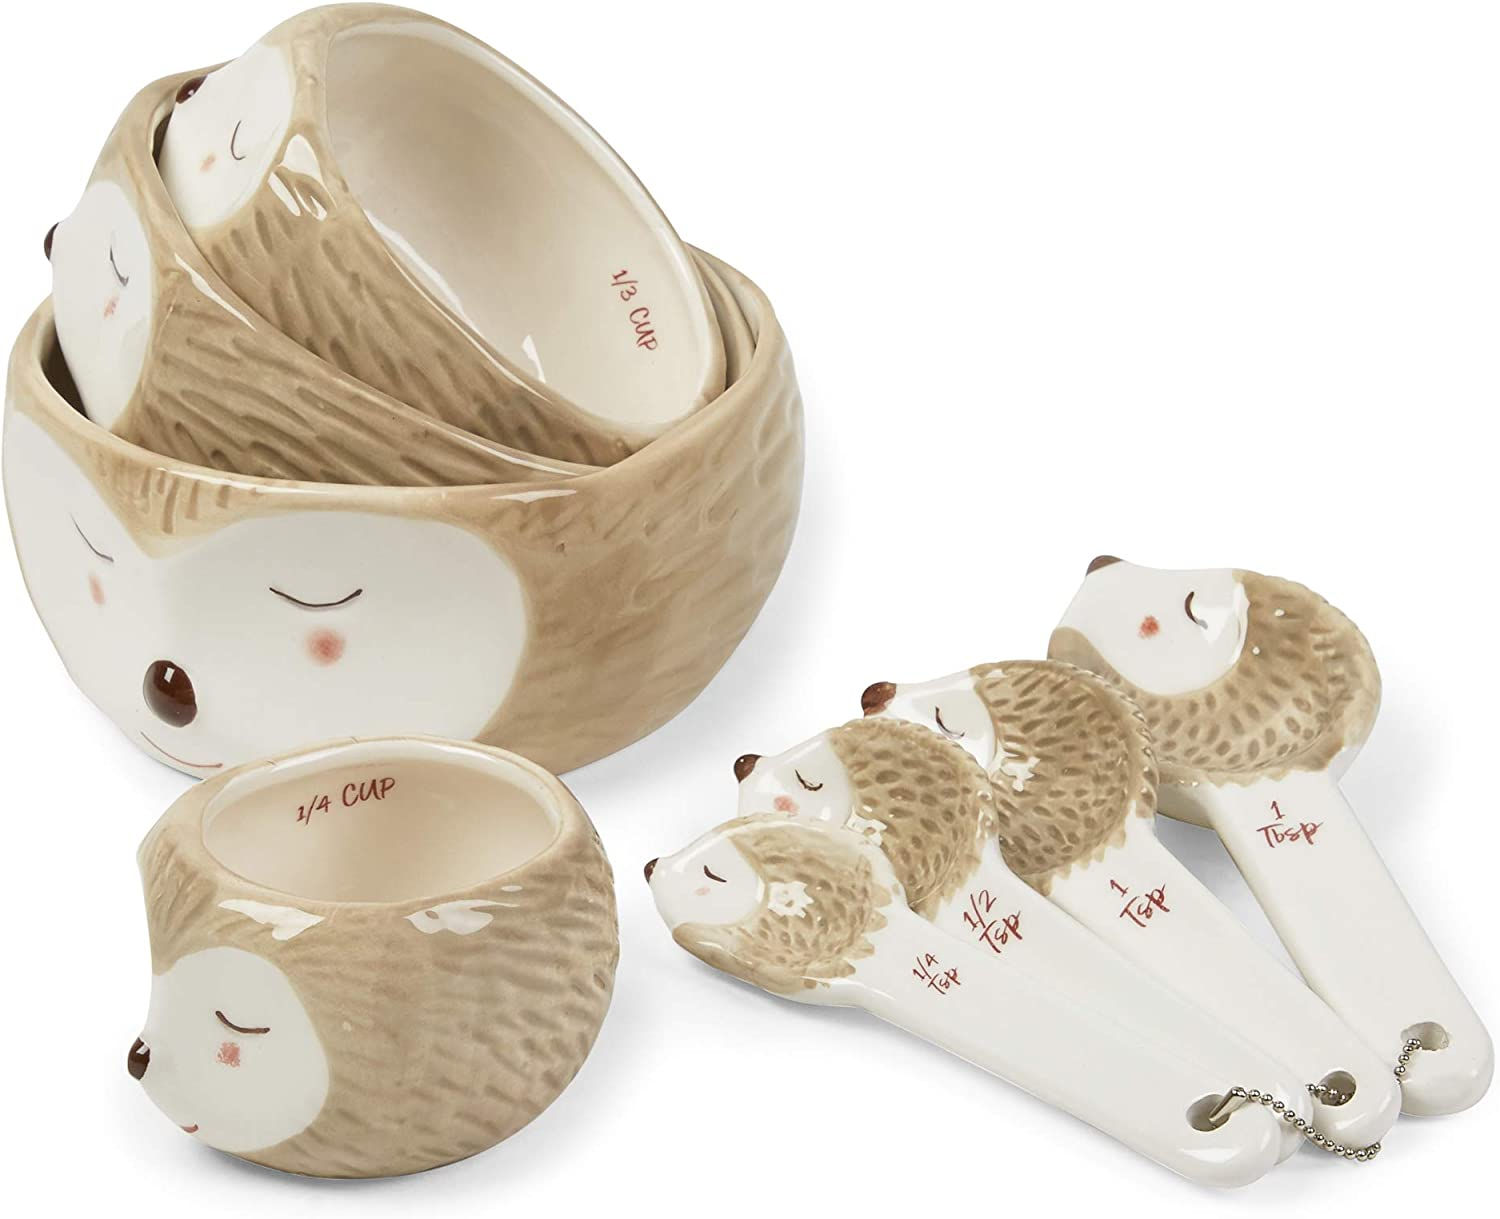 8-Piece Set Of Hedgehog Themed Measuring Cups And Measuring Spoons - Decorative Giftable Ceramic Cups & Spoons In Assorted Sizes For Kitchen Décor Display And Practical Use by Tri-Coastal Design